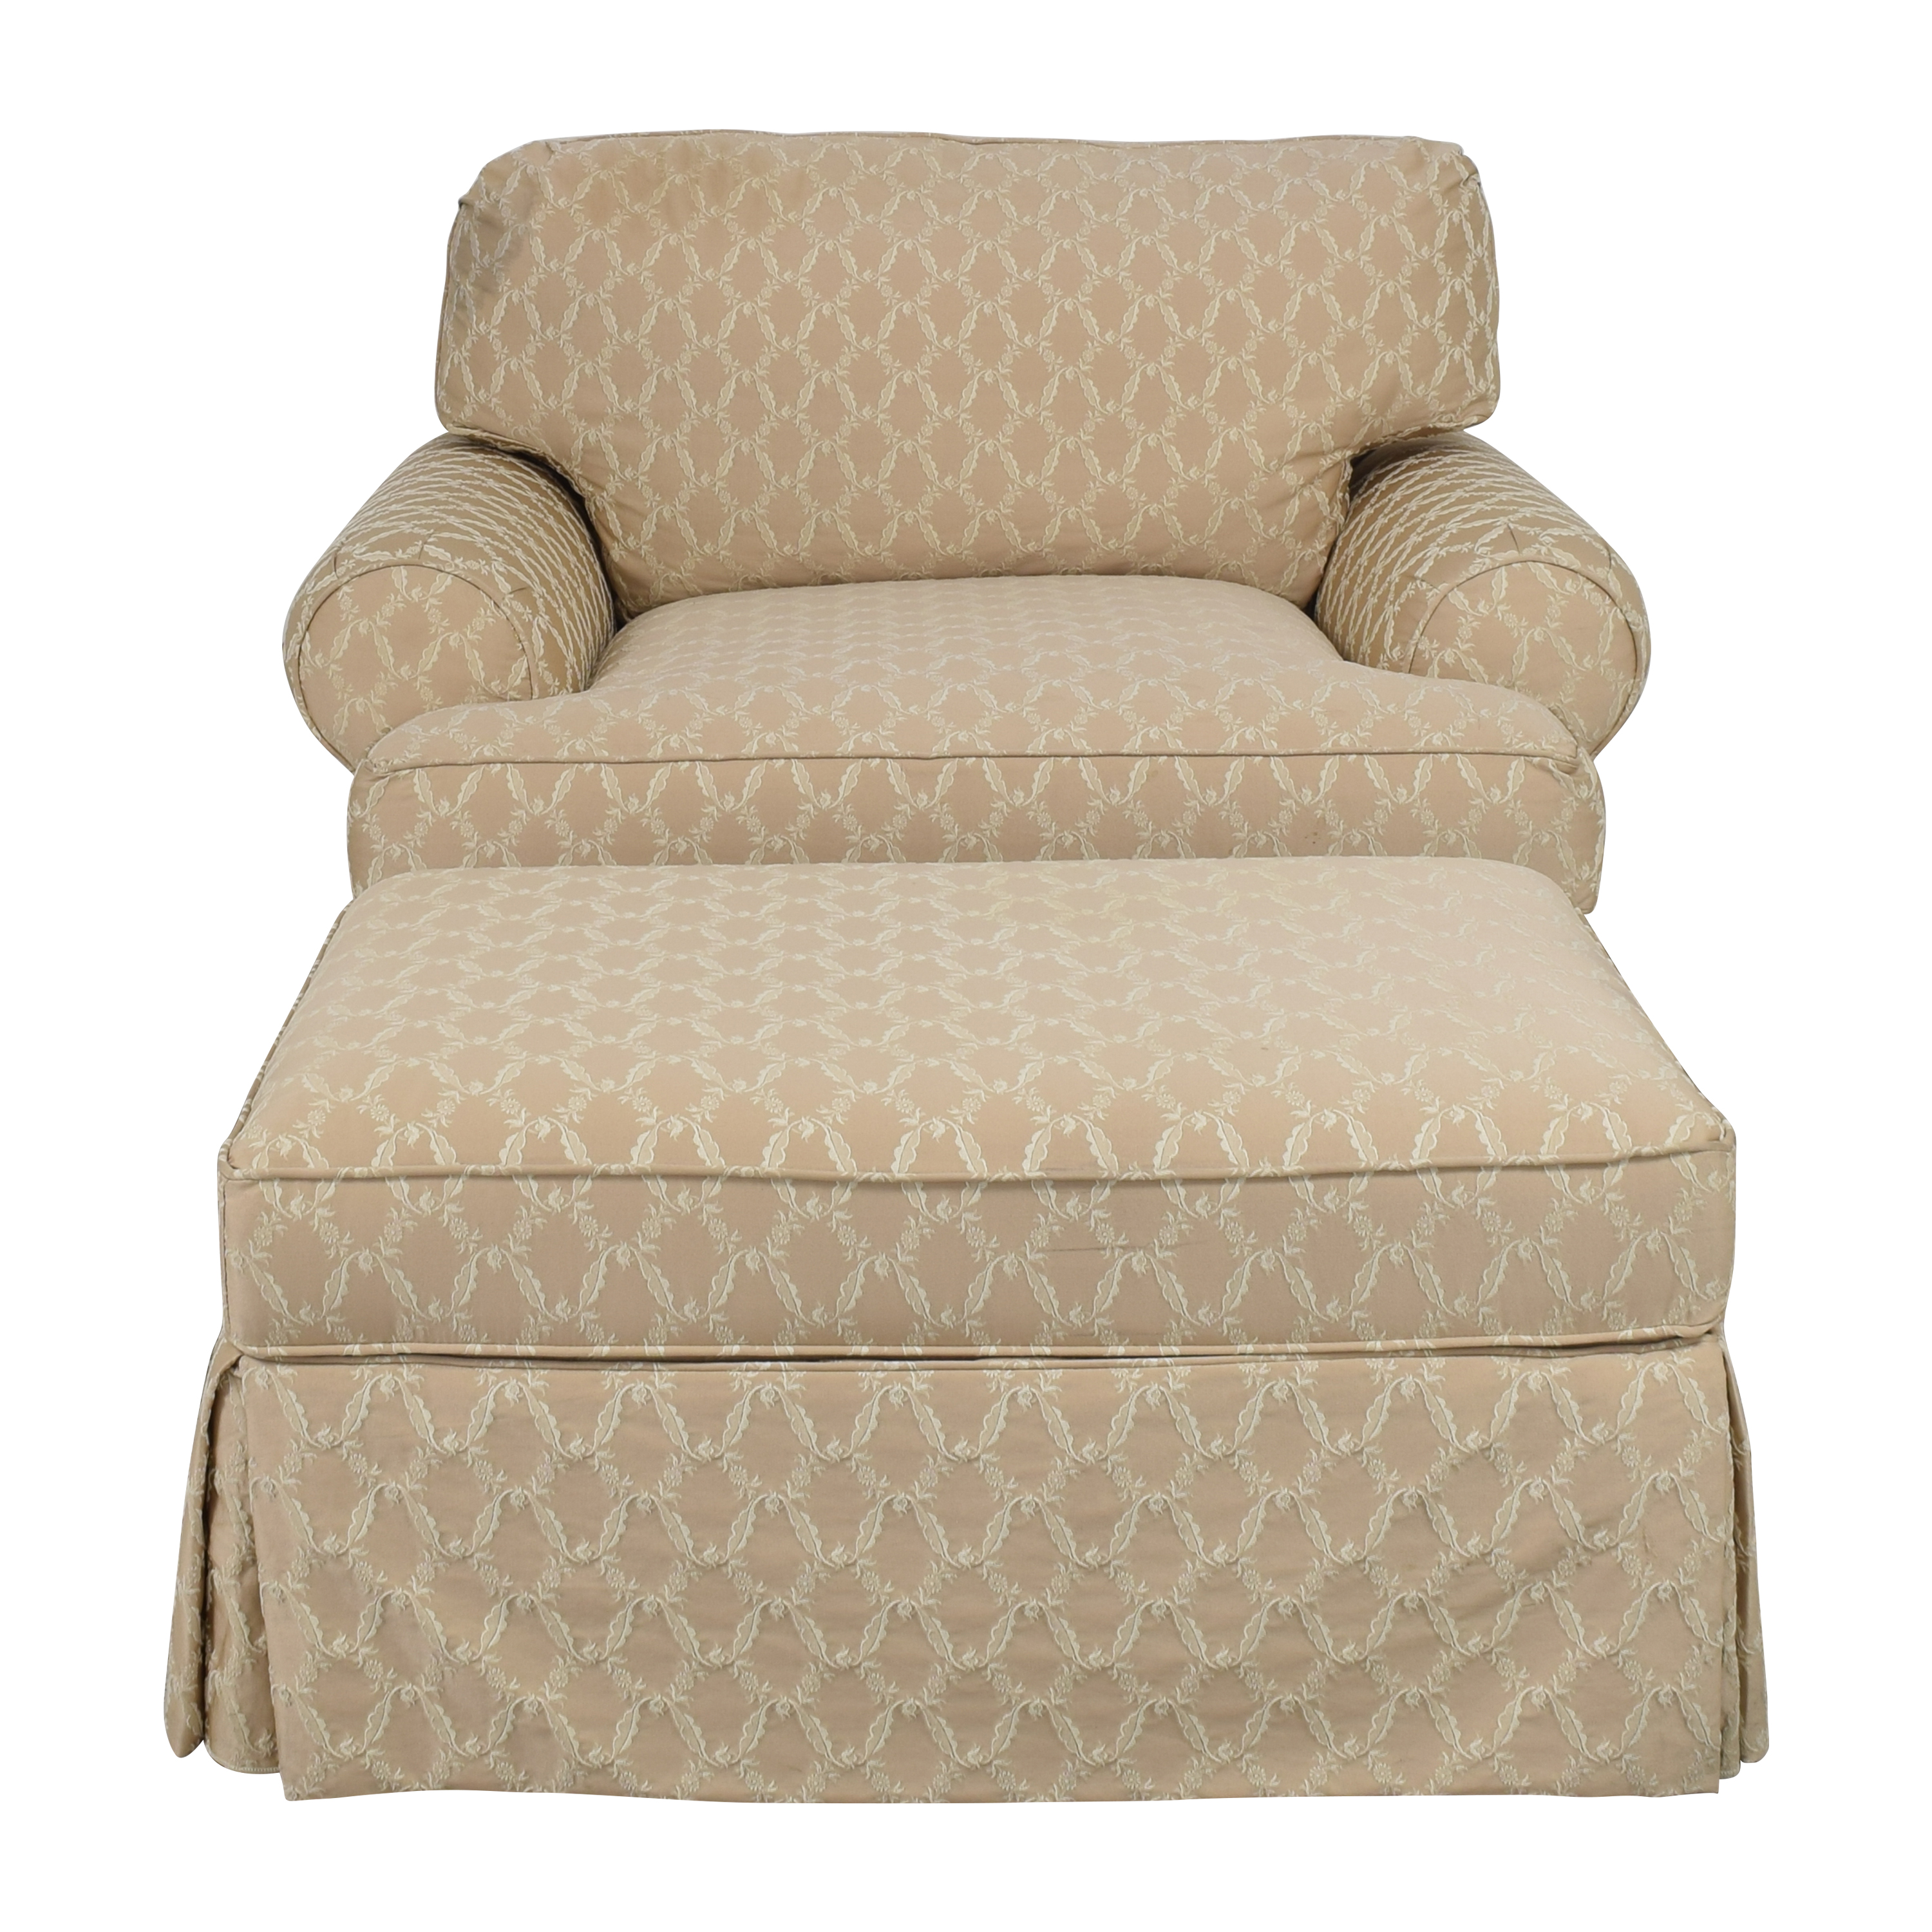 Domain Domain Chair and a Half with Ottoman for sale